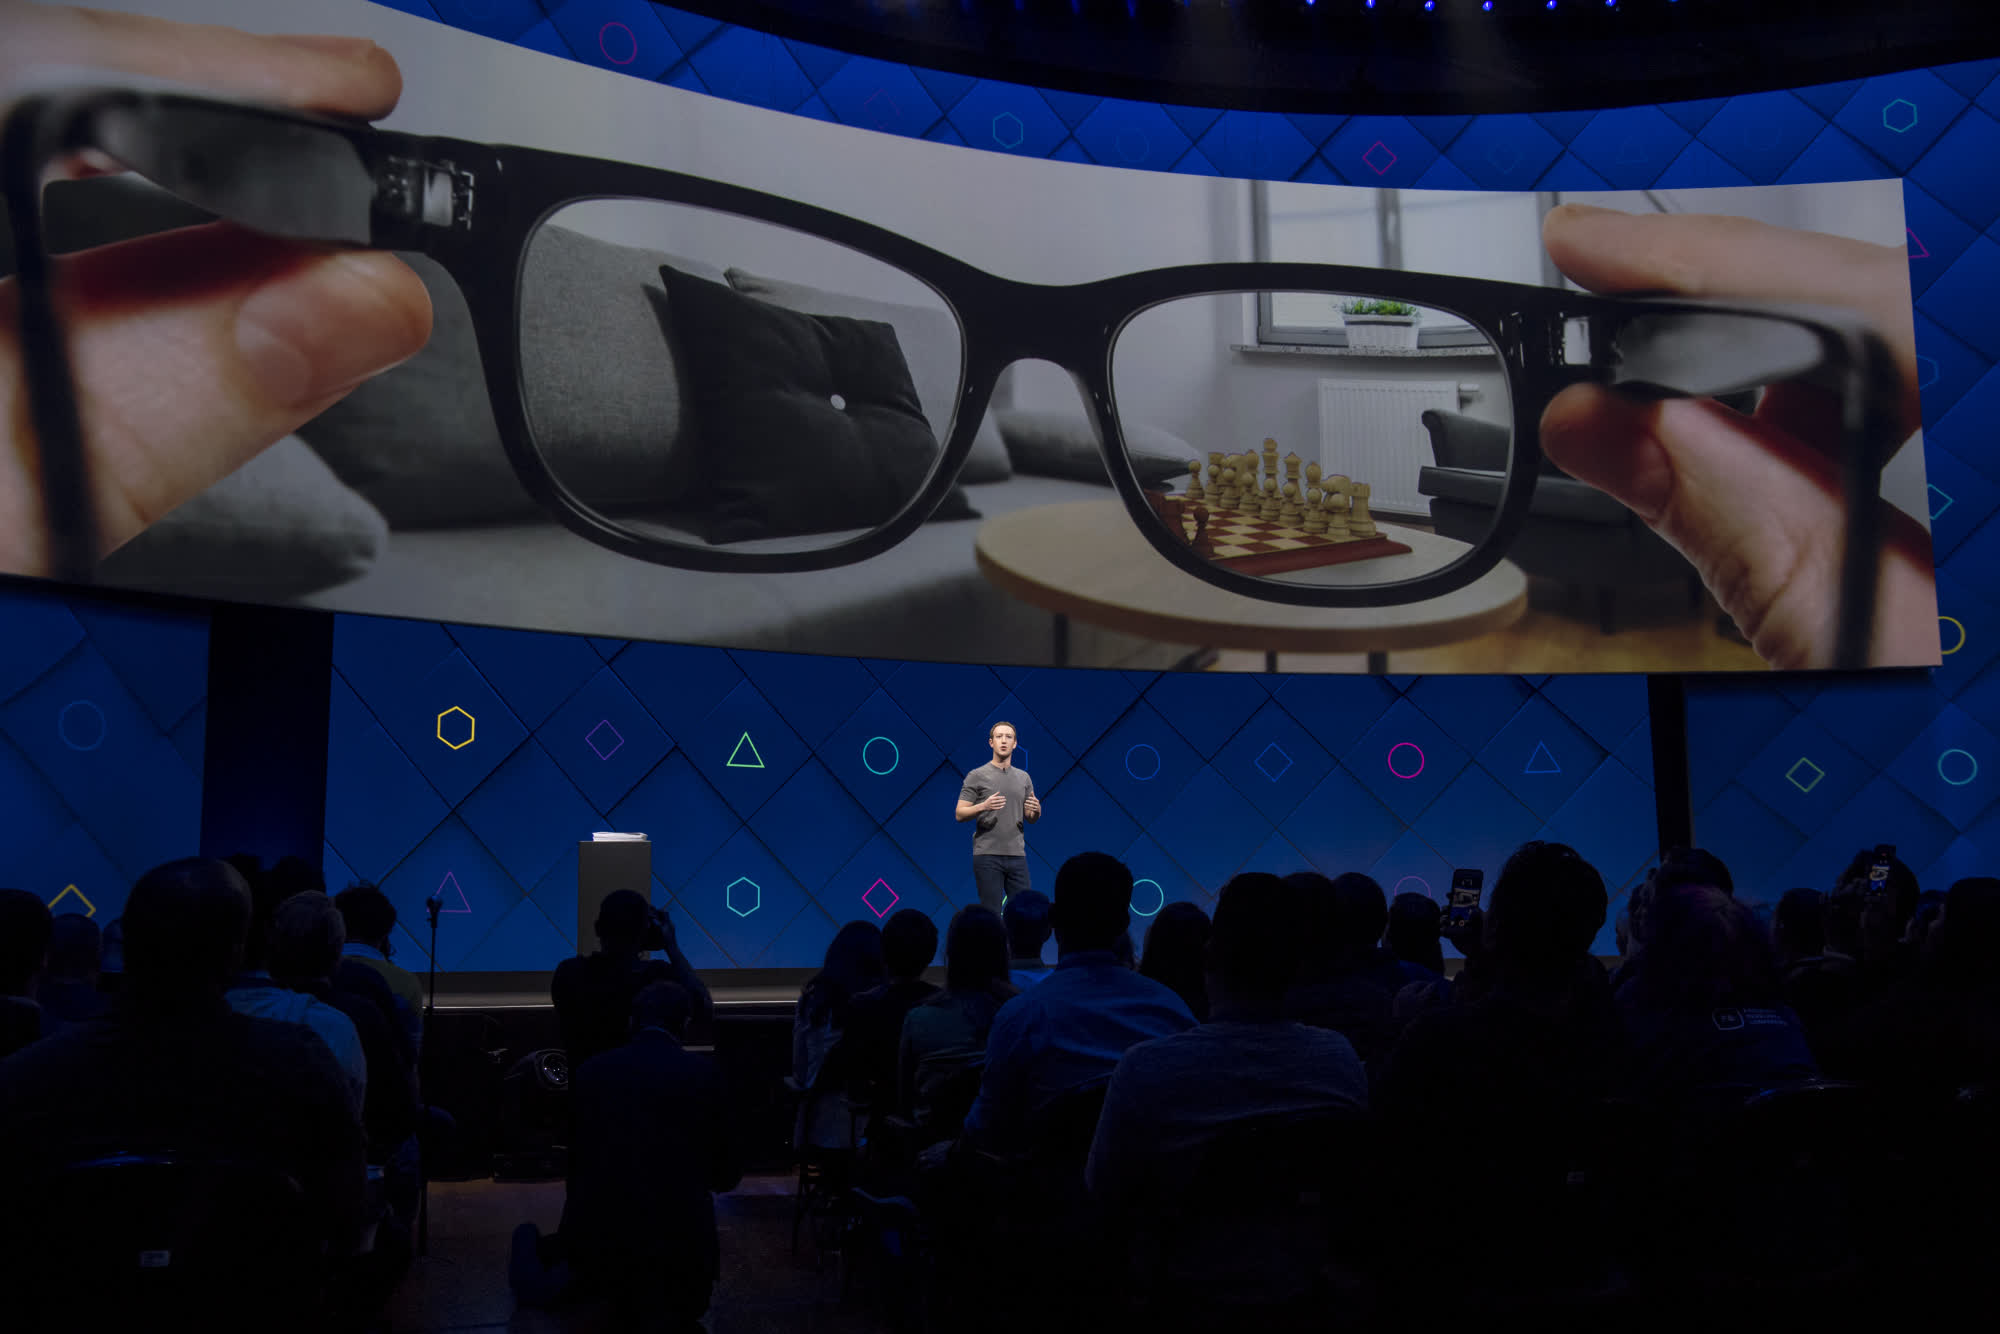 Facebook's smart glasses to arrive this year sans AR overlay tech